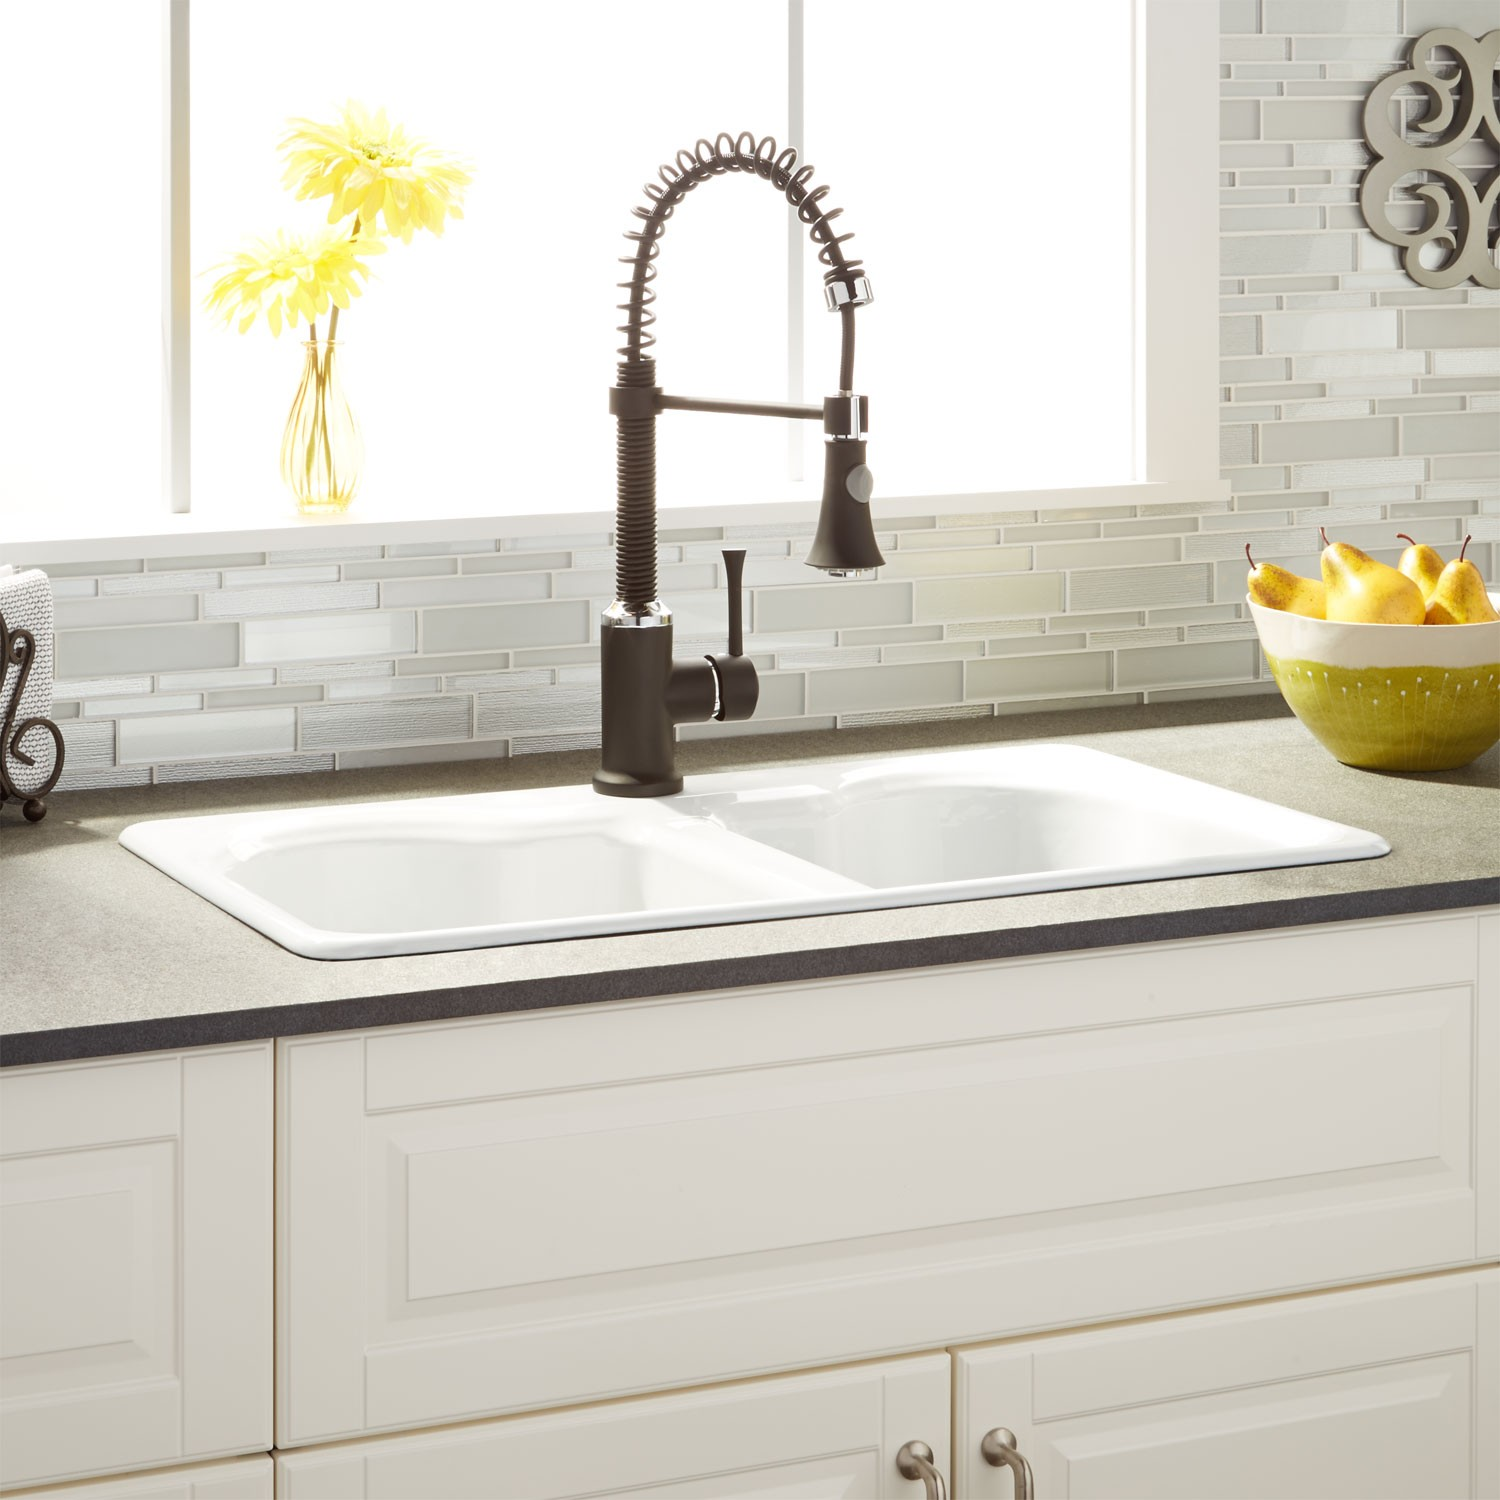 463297-32-double-bowl-cast-iron-drop-in-kitchen-sink